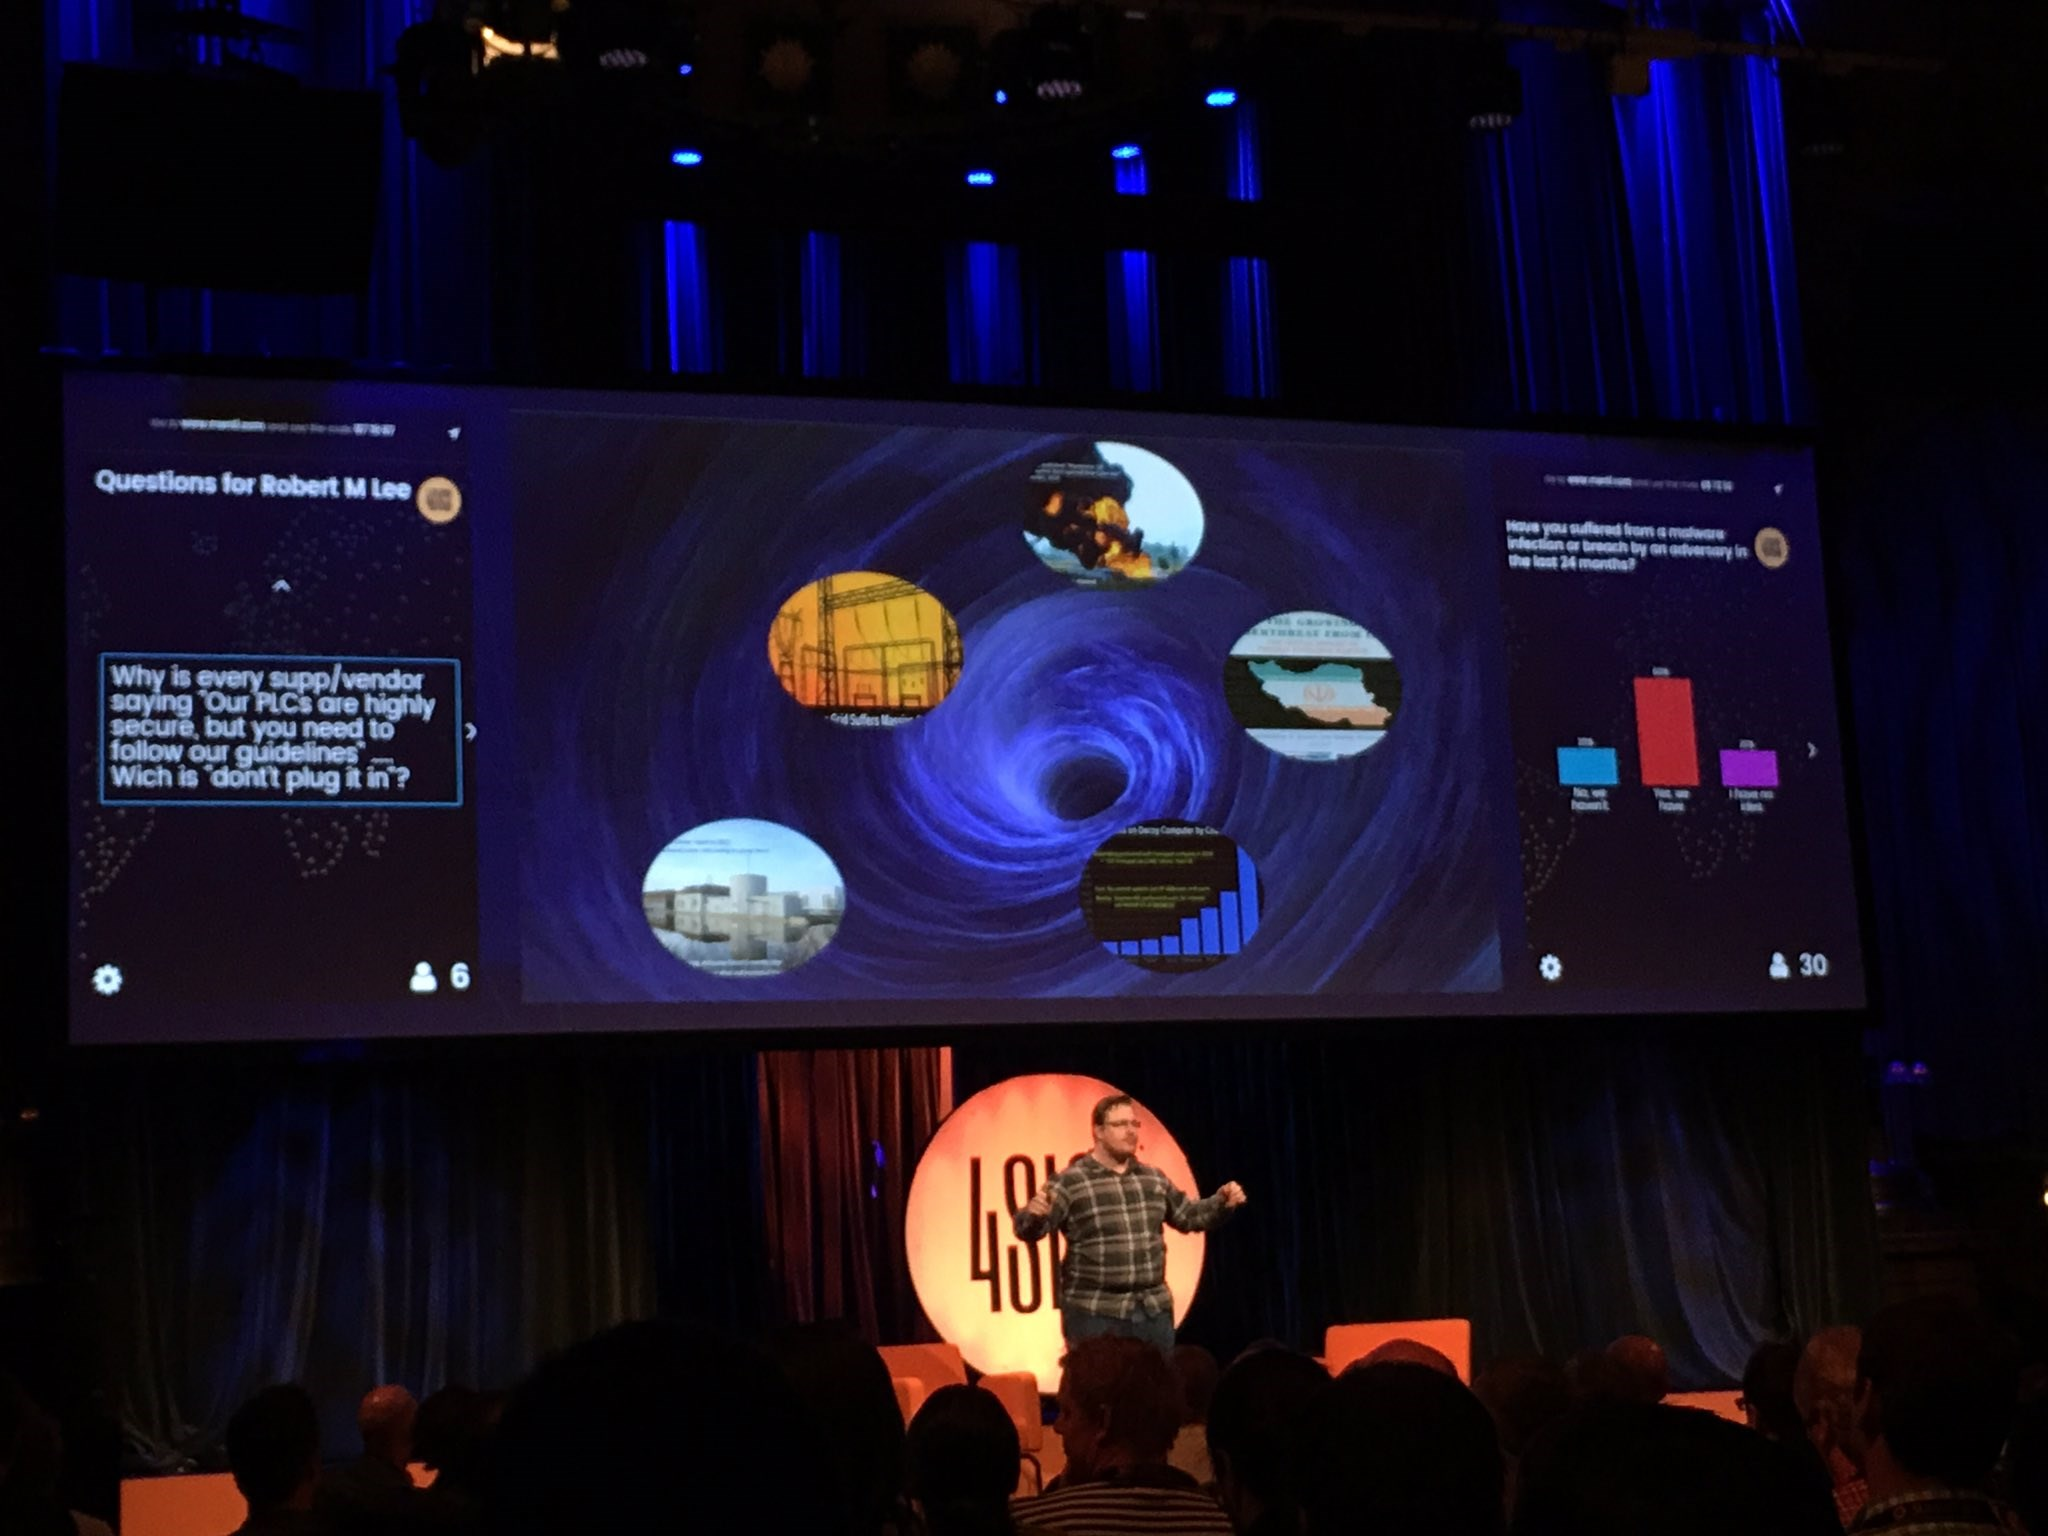 4SICS: ICS threats are mostly unknown, industry needs more information sharing